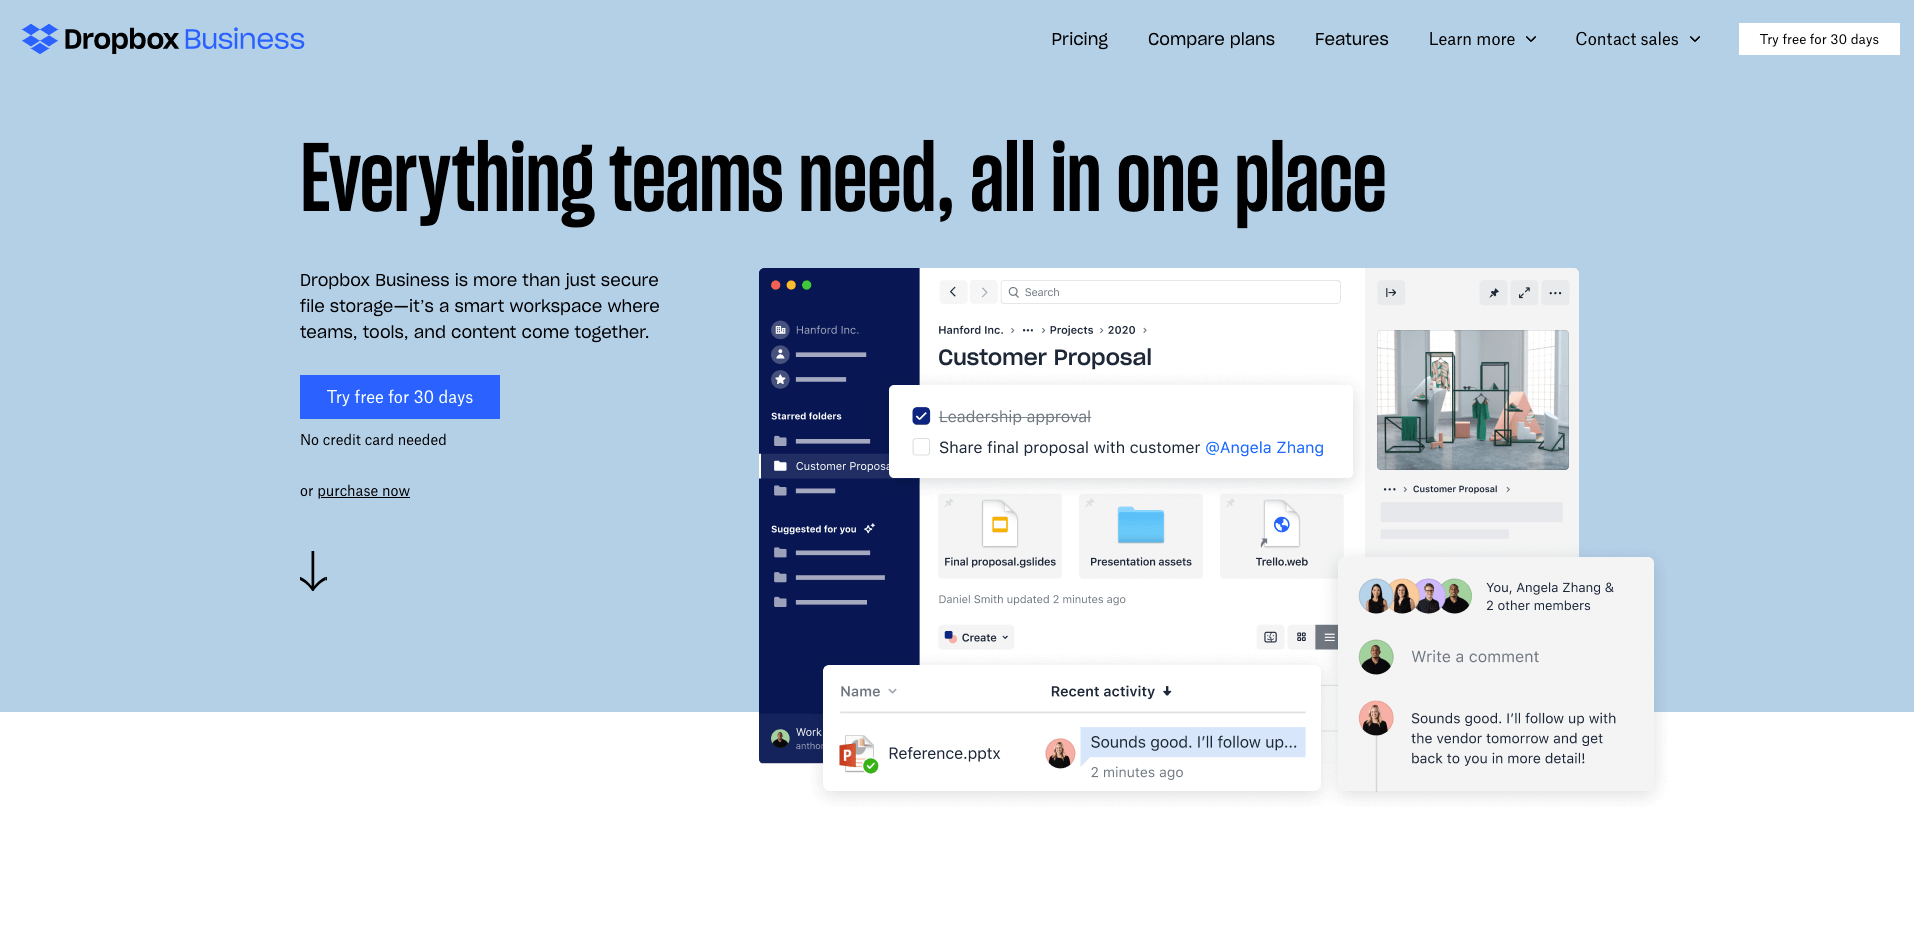 dropbox homepage screenshot